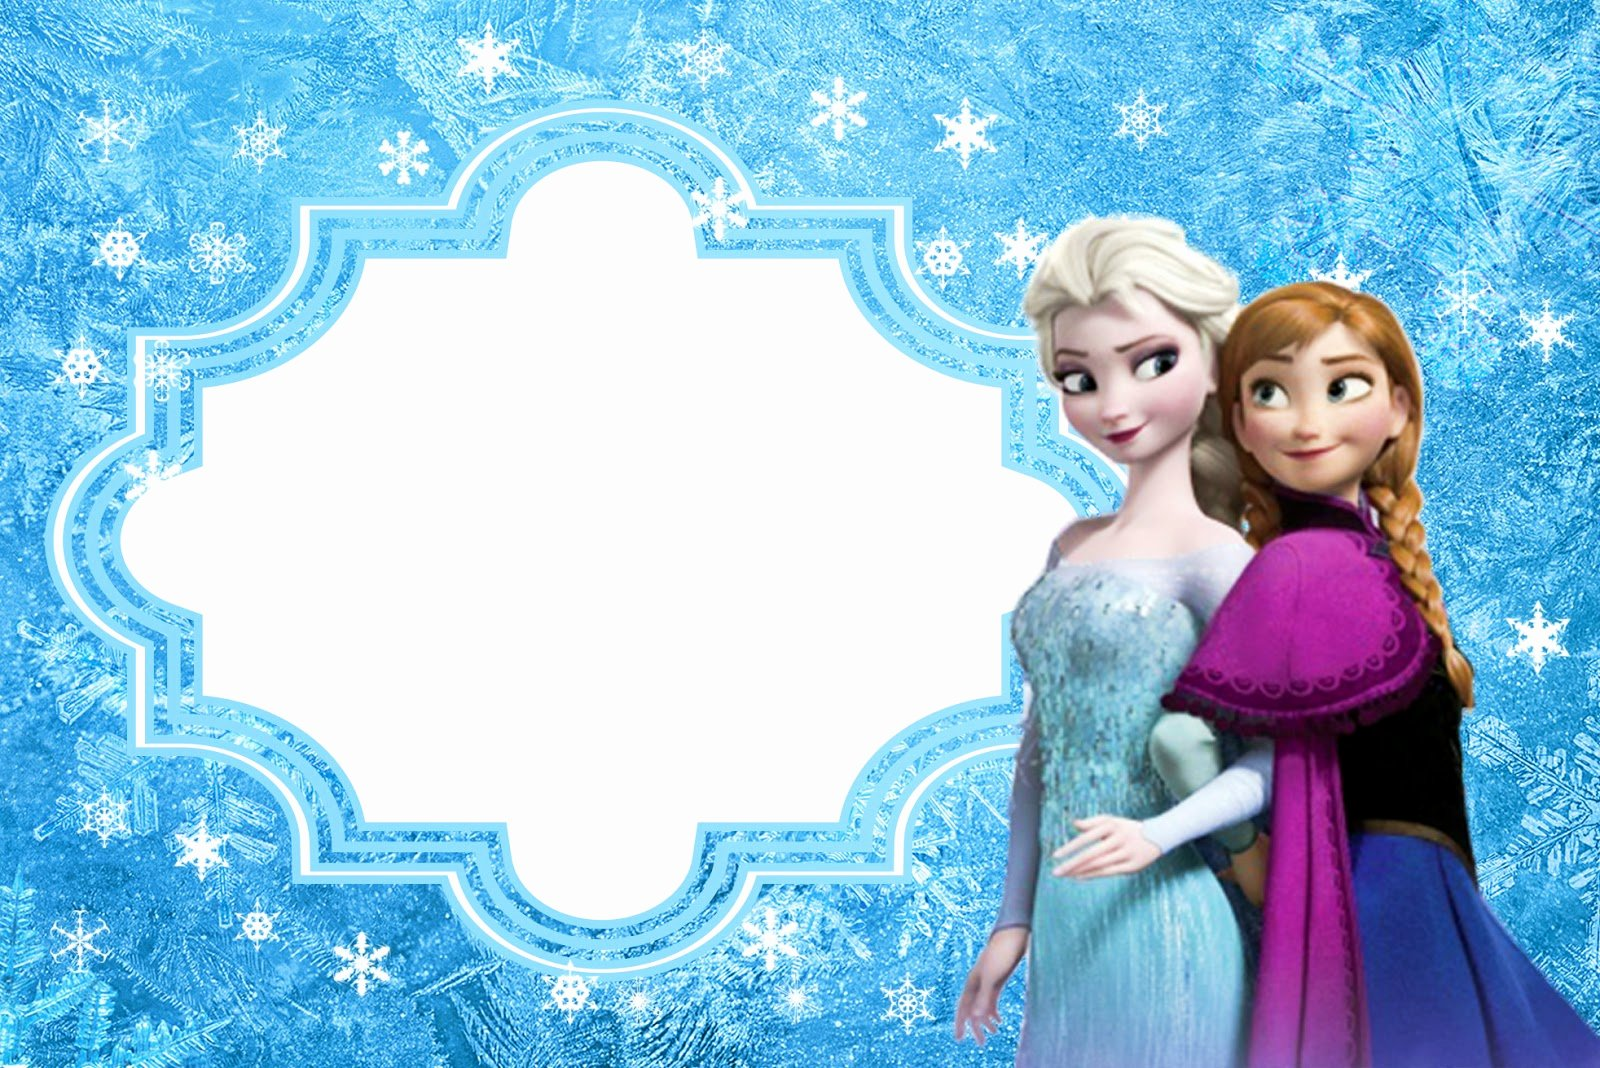 Free Frozen Invitations Templates Elegant Frozen Free Printable Cards or Party Invitations Oh My